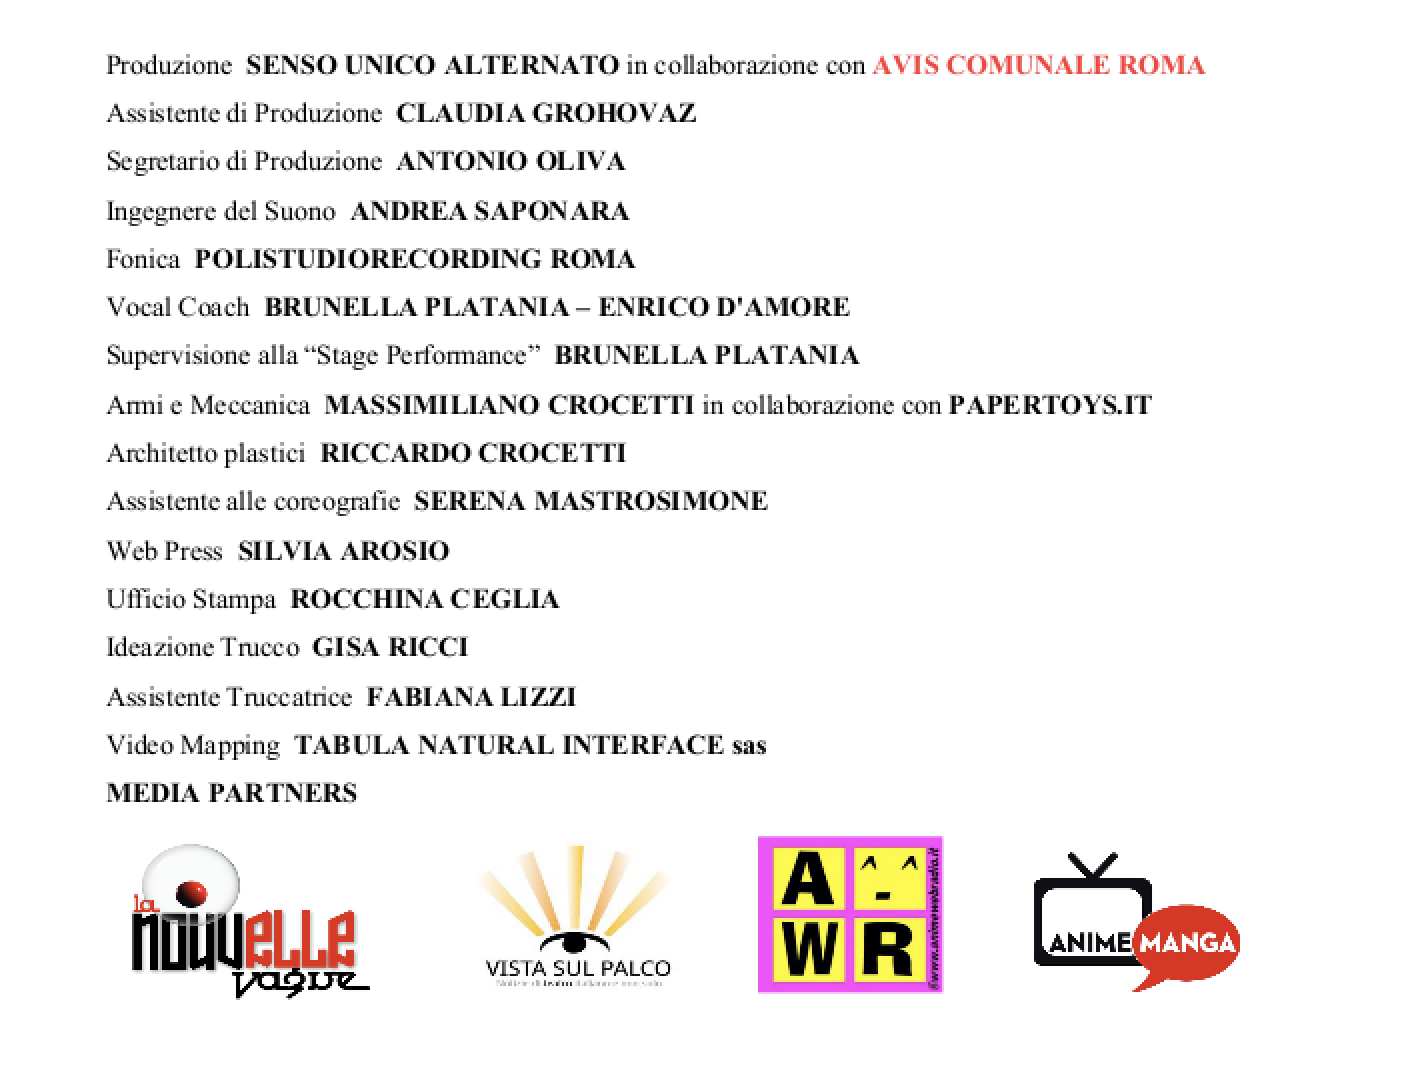 Georgie Il Musical credits e media partners